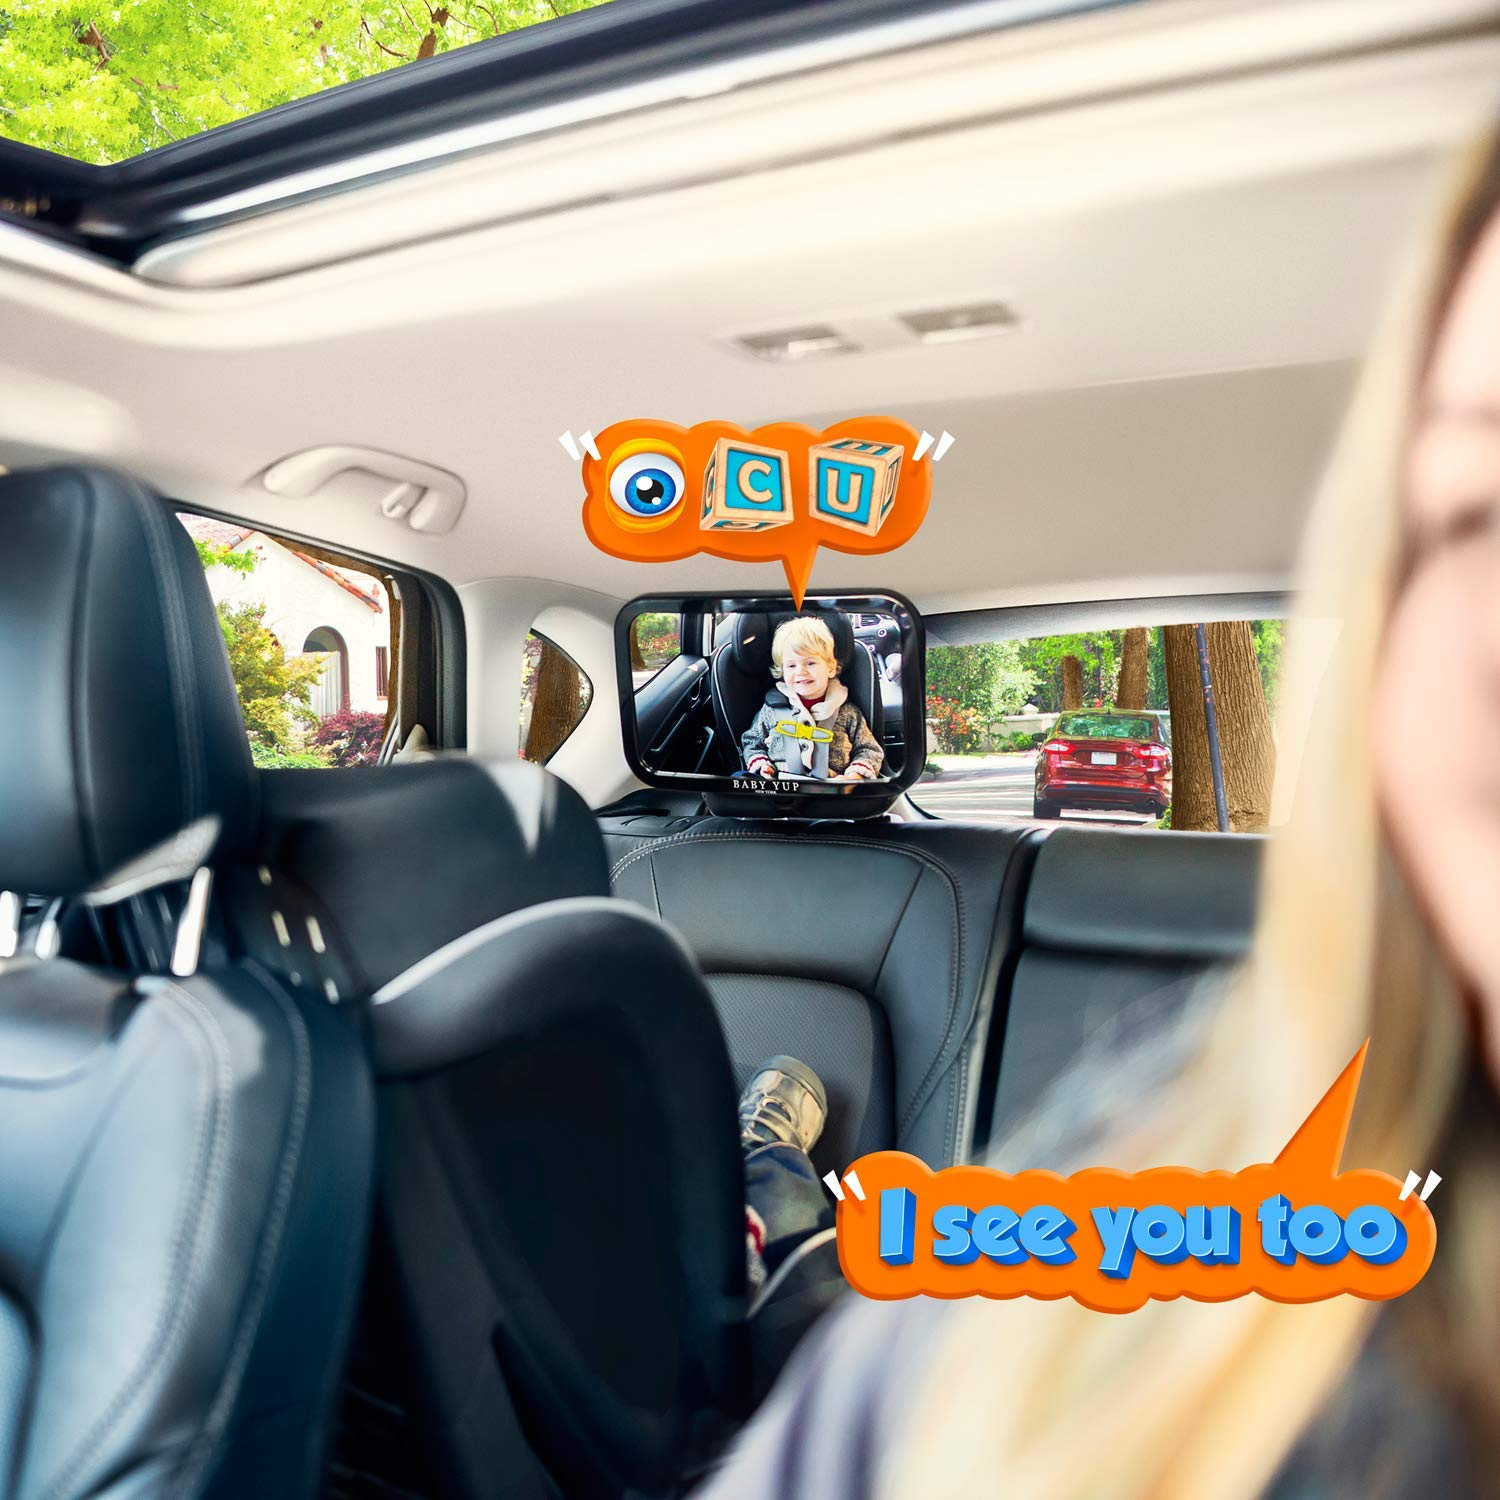 Black Sequn Upgrade Baby Car Backseat Mirror Rear View Facing Back Seat Mirror Baby Safety Rearview Applicable to Any Vehicle